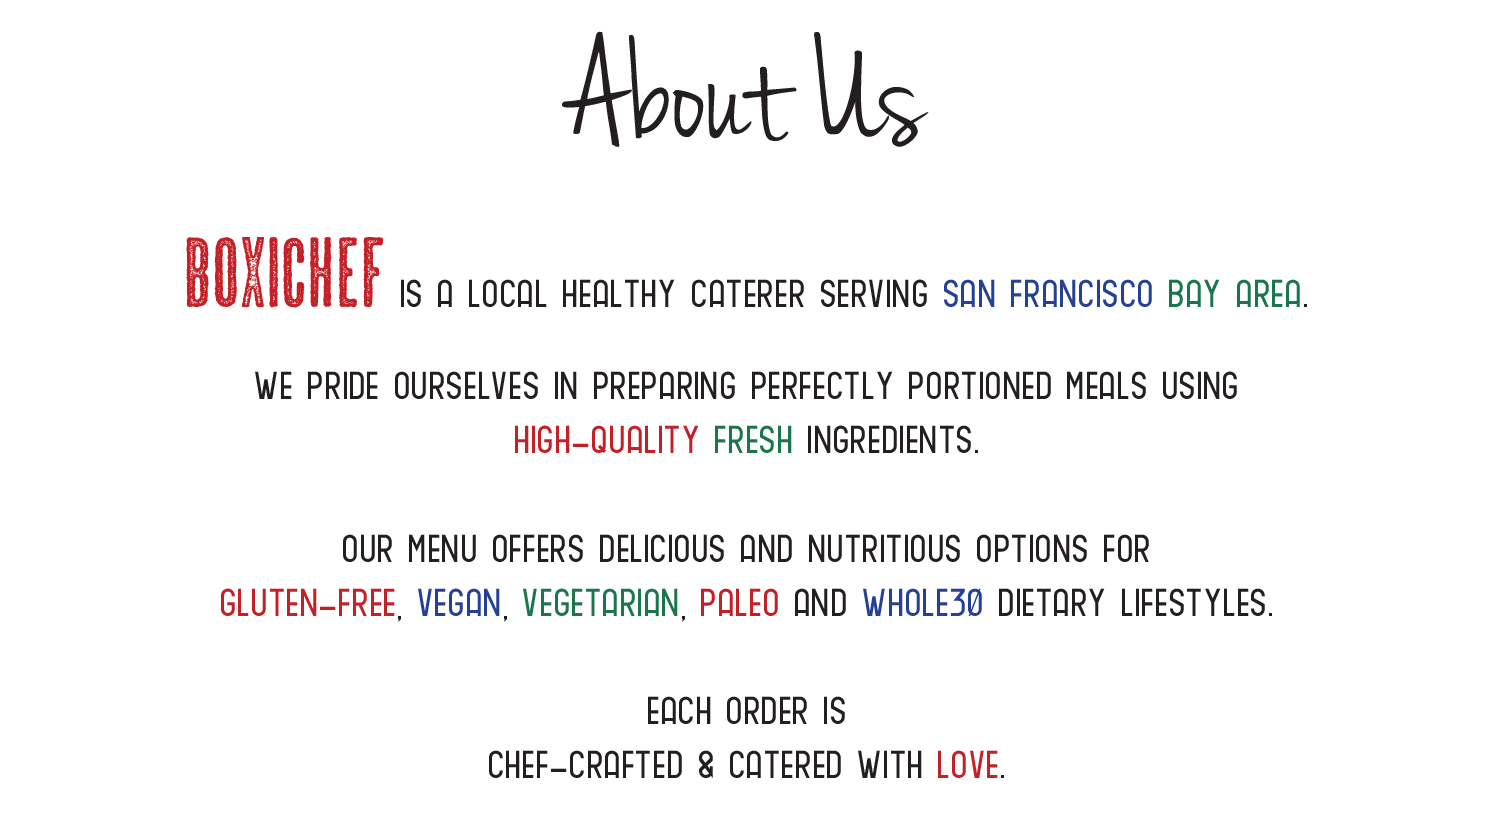 Boxichef_About Us 2018-01.png